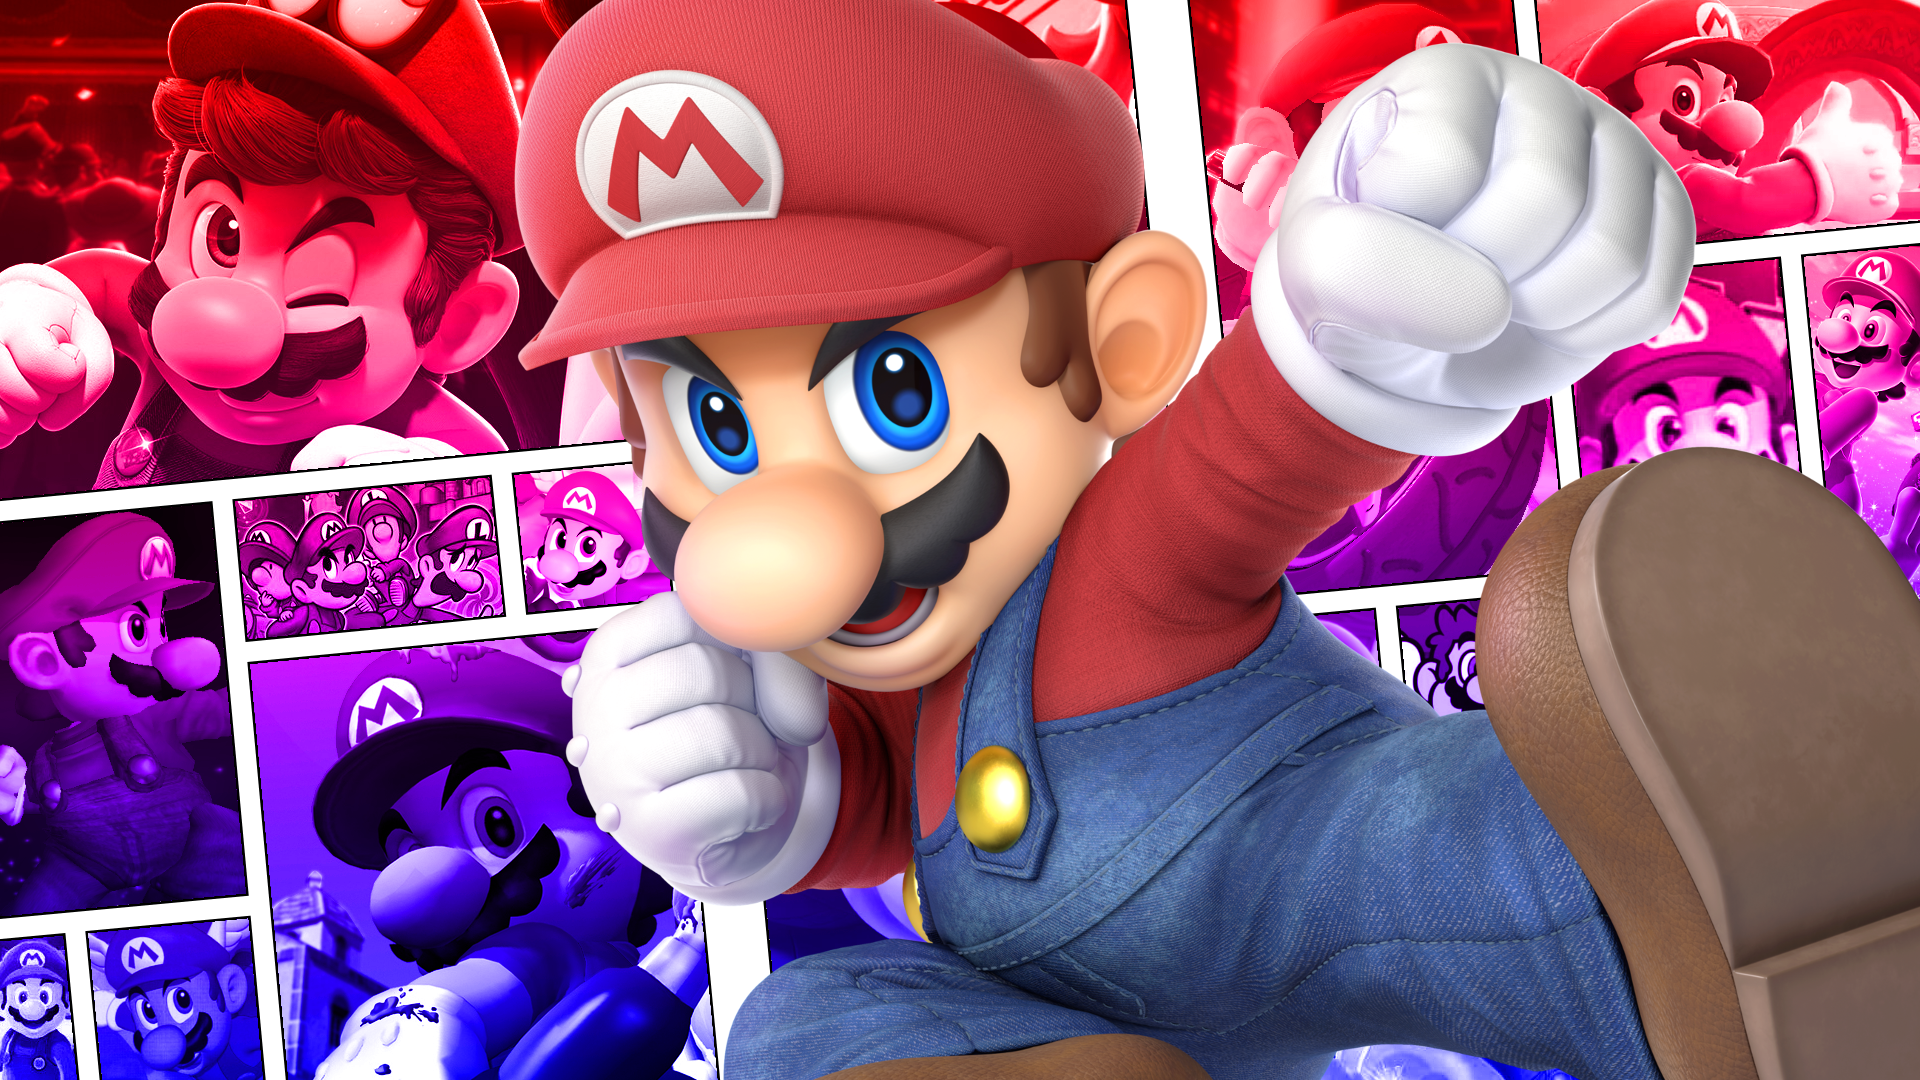 Mario Wallpaper – Finding the Best Graphics for Your Computer